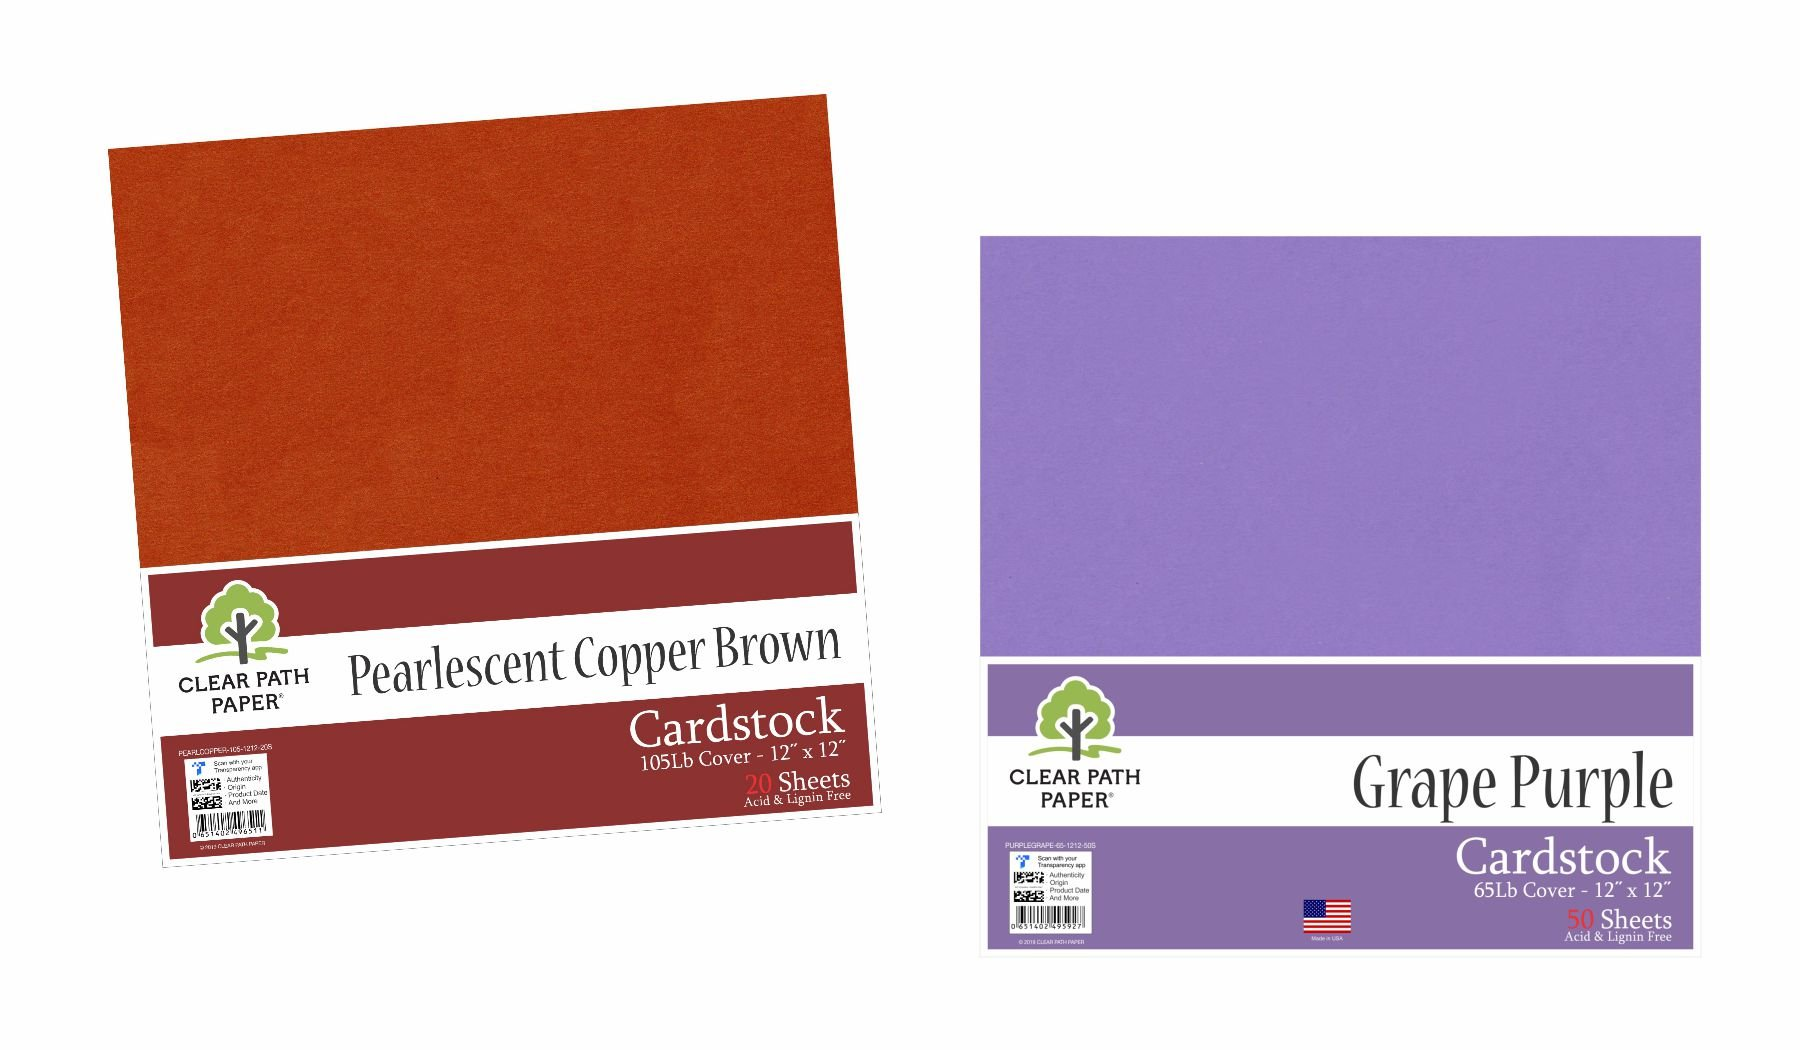 Image of an Amazon bundle of Grape Purple and Pearlescent Copper Brown cardstock packs